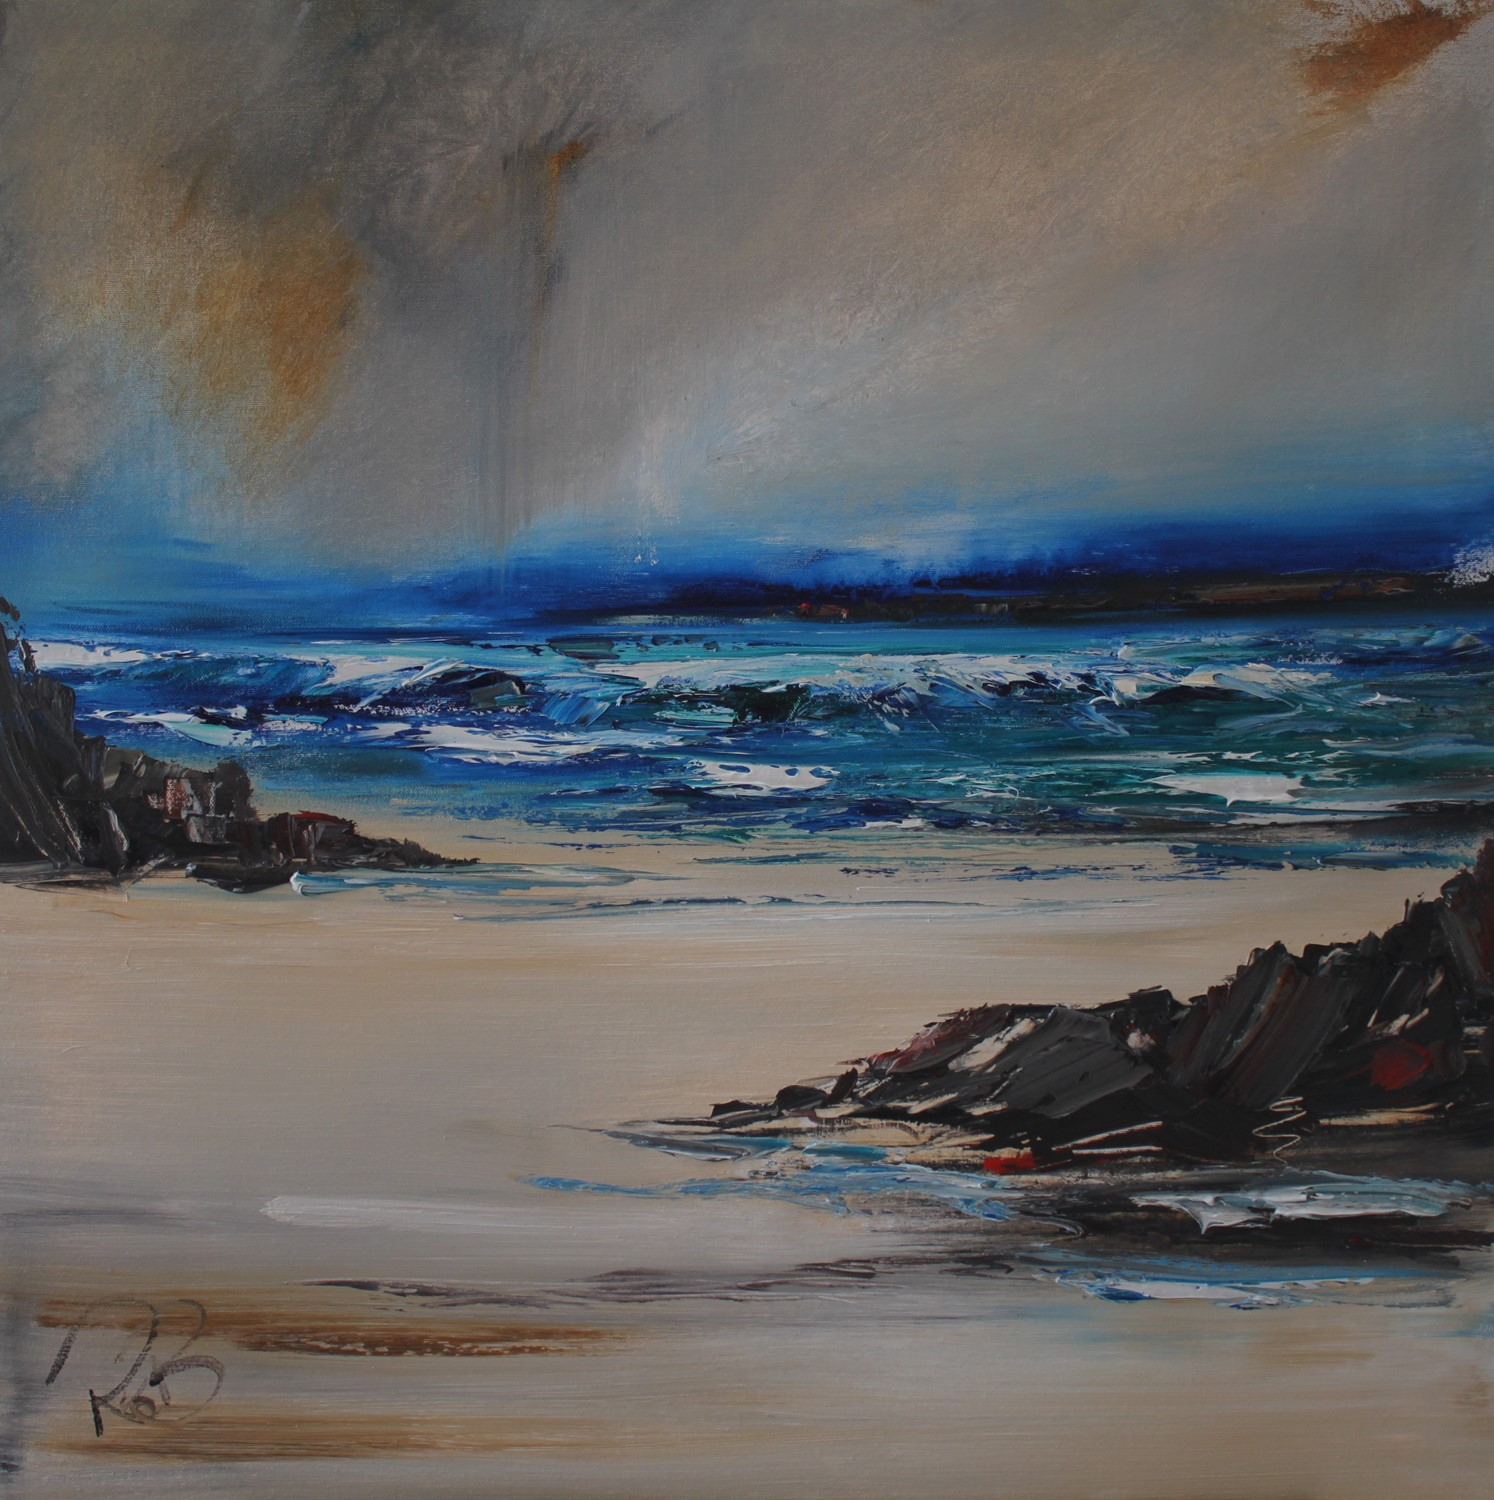 'Dreary Weather' by artist Rosanne Barr